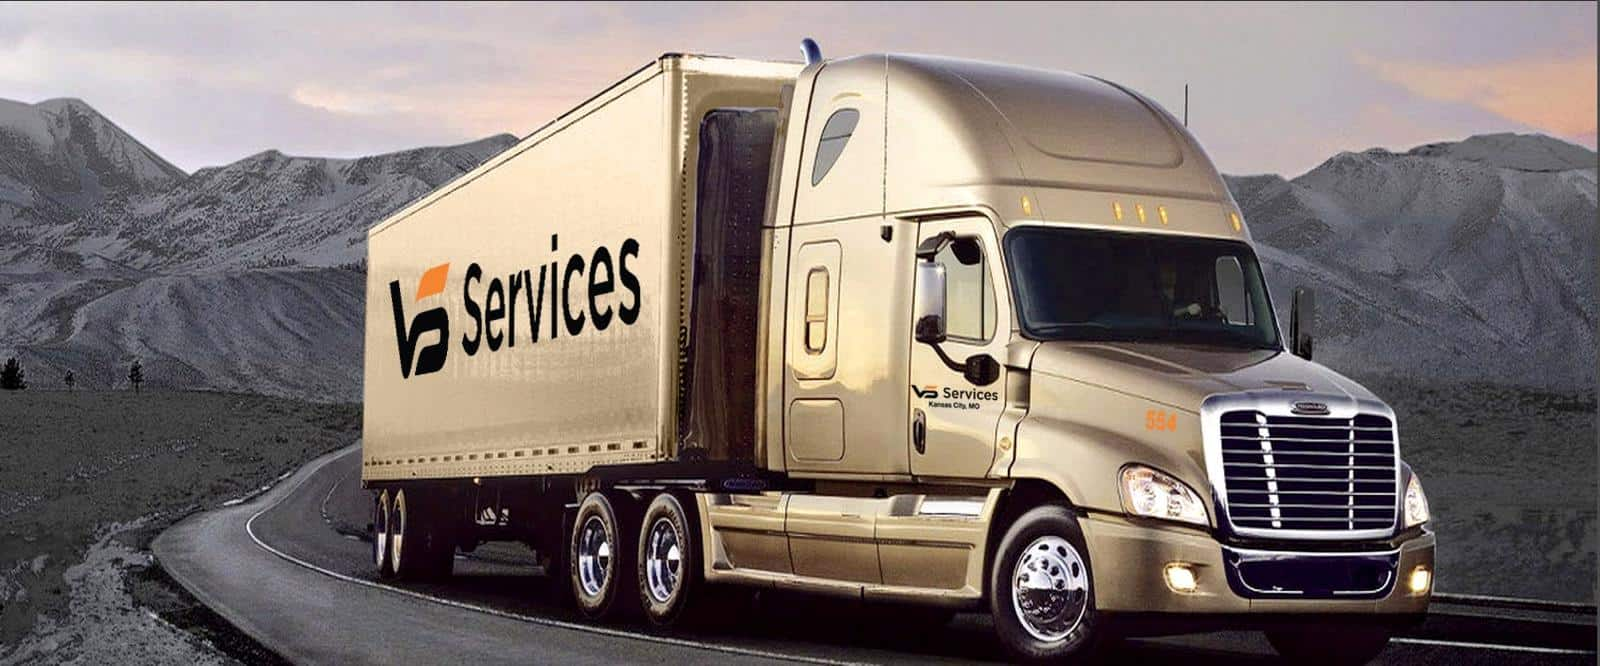 VS Services LLC a Trucking Company Kansas City